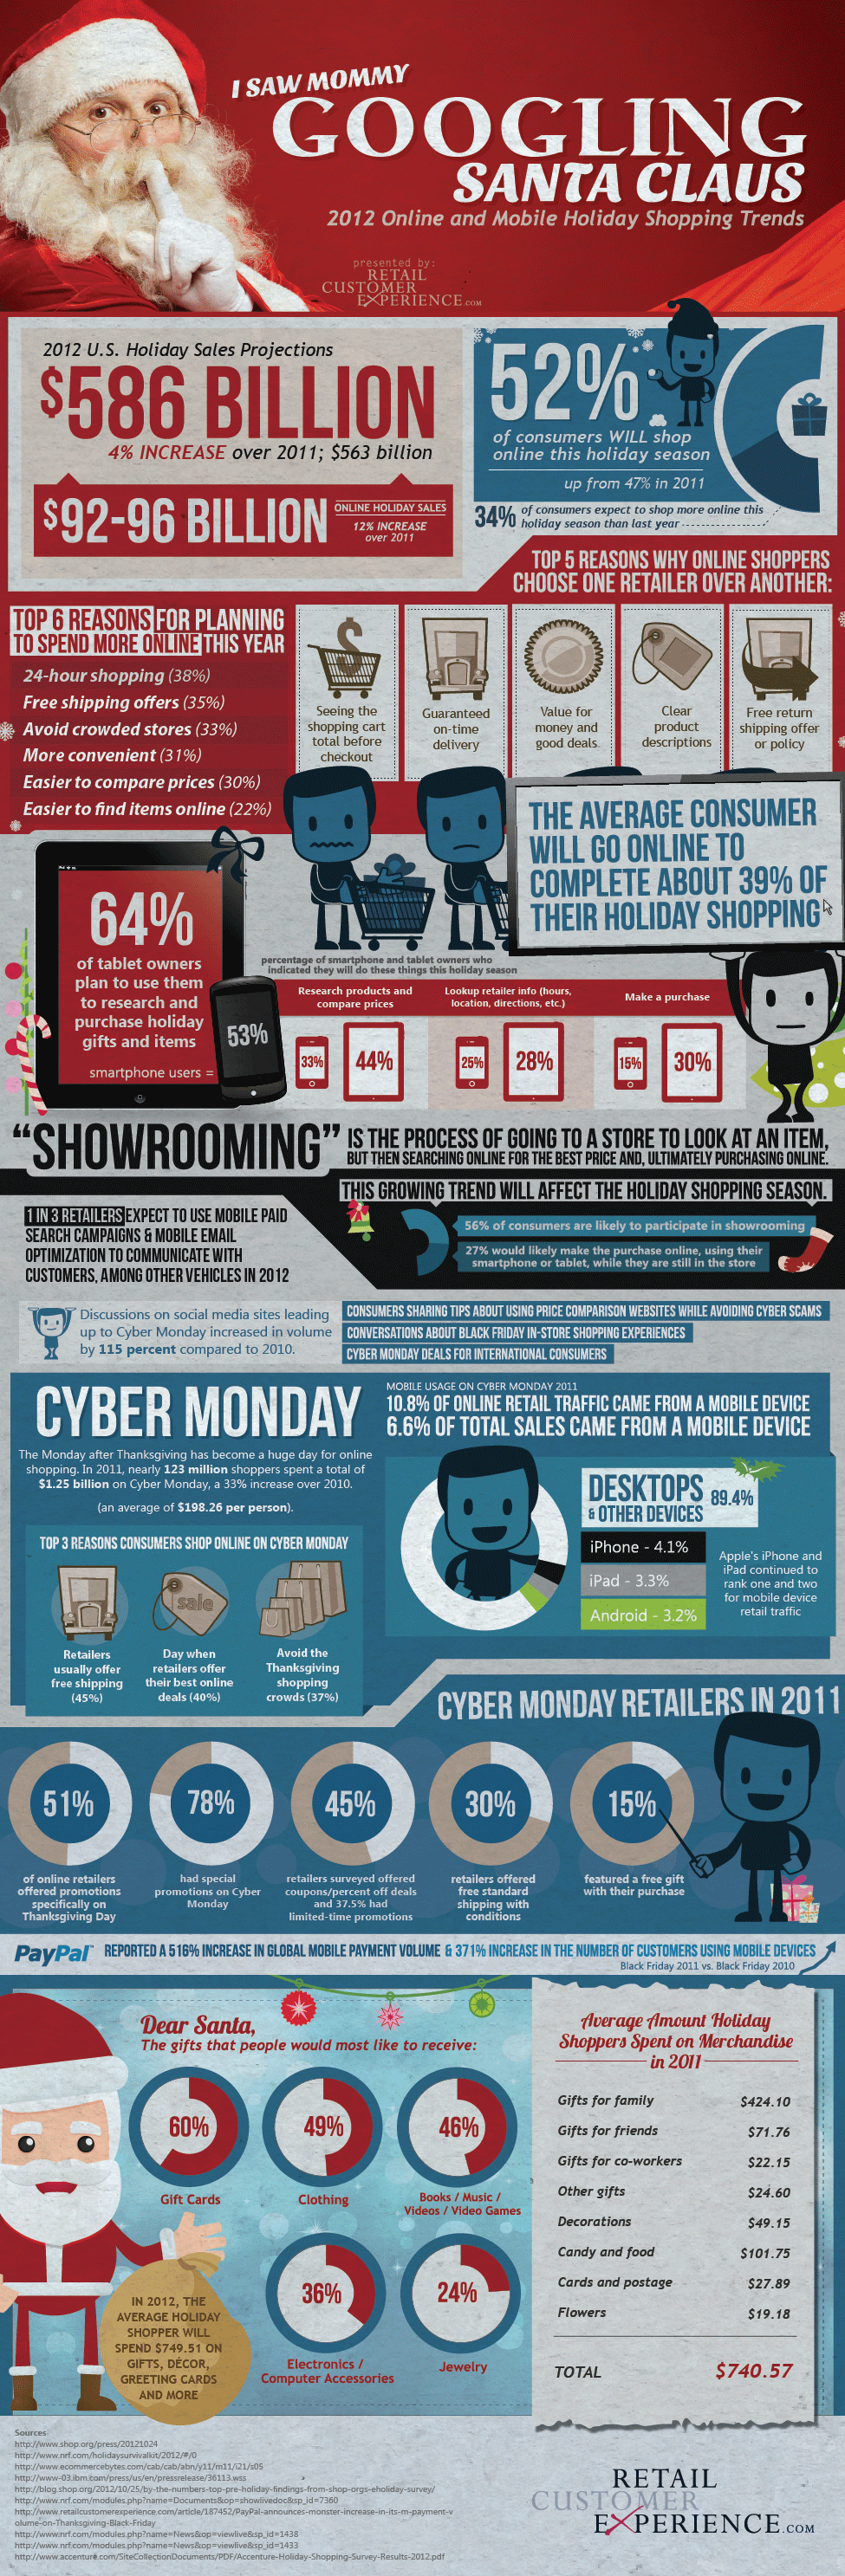 2012 Online and Mobile Holiday Shopping Trends [Infographic]